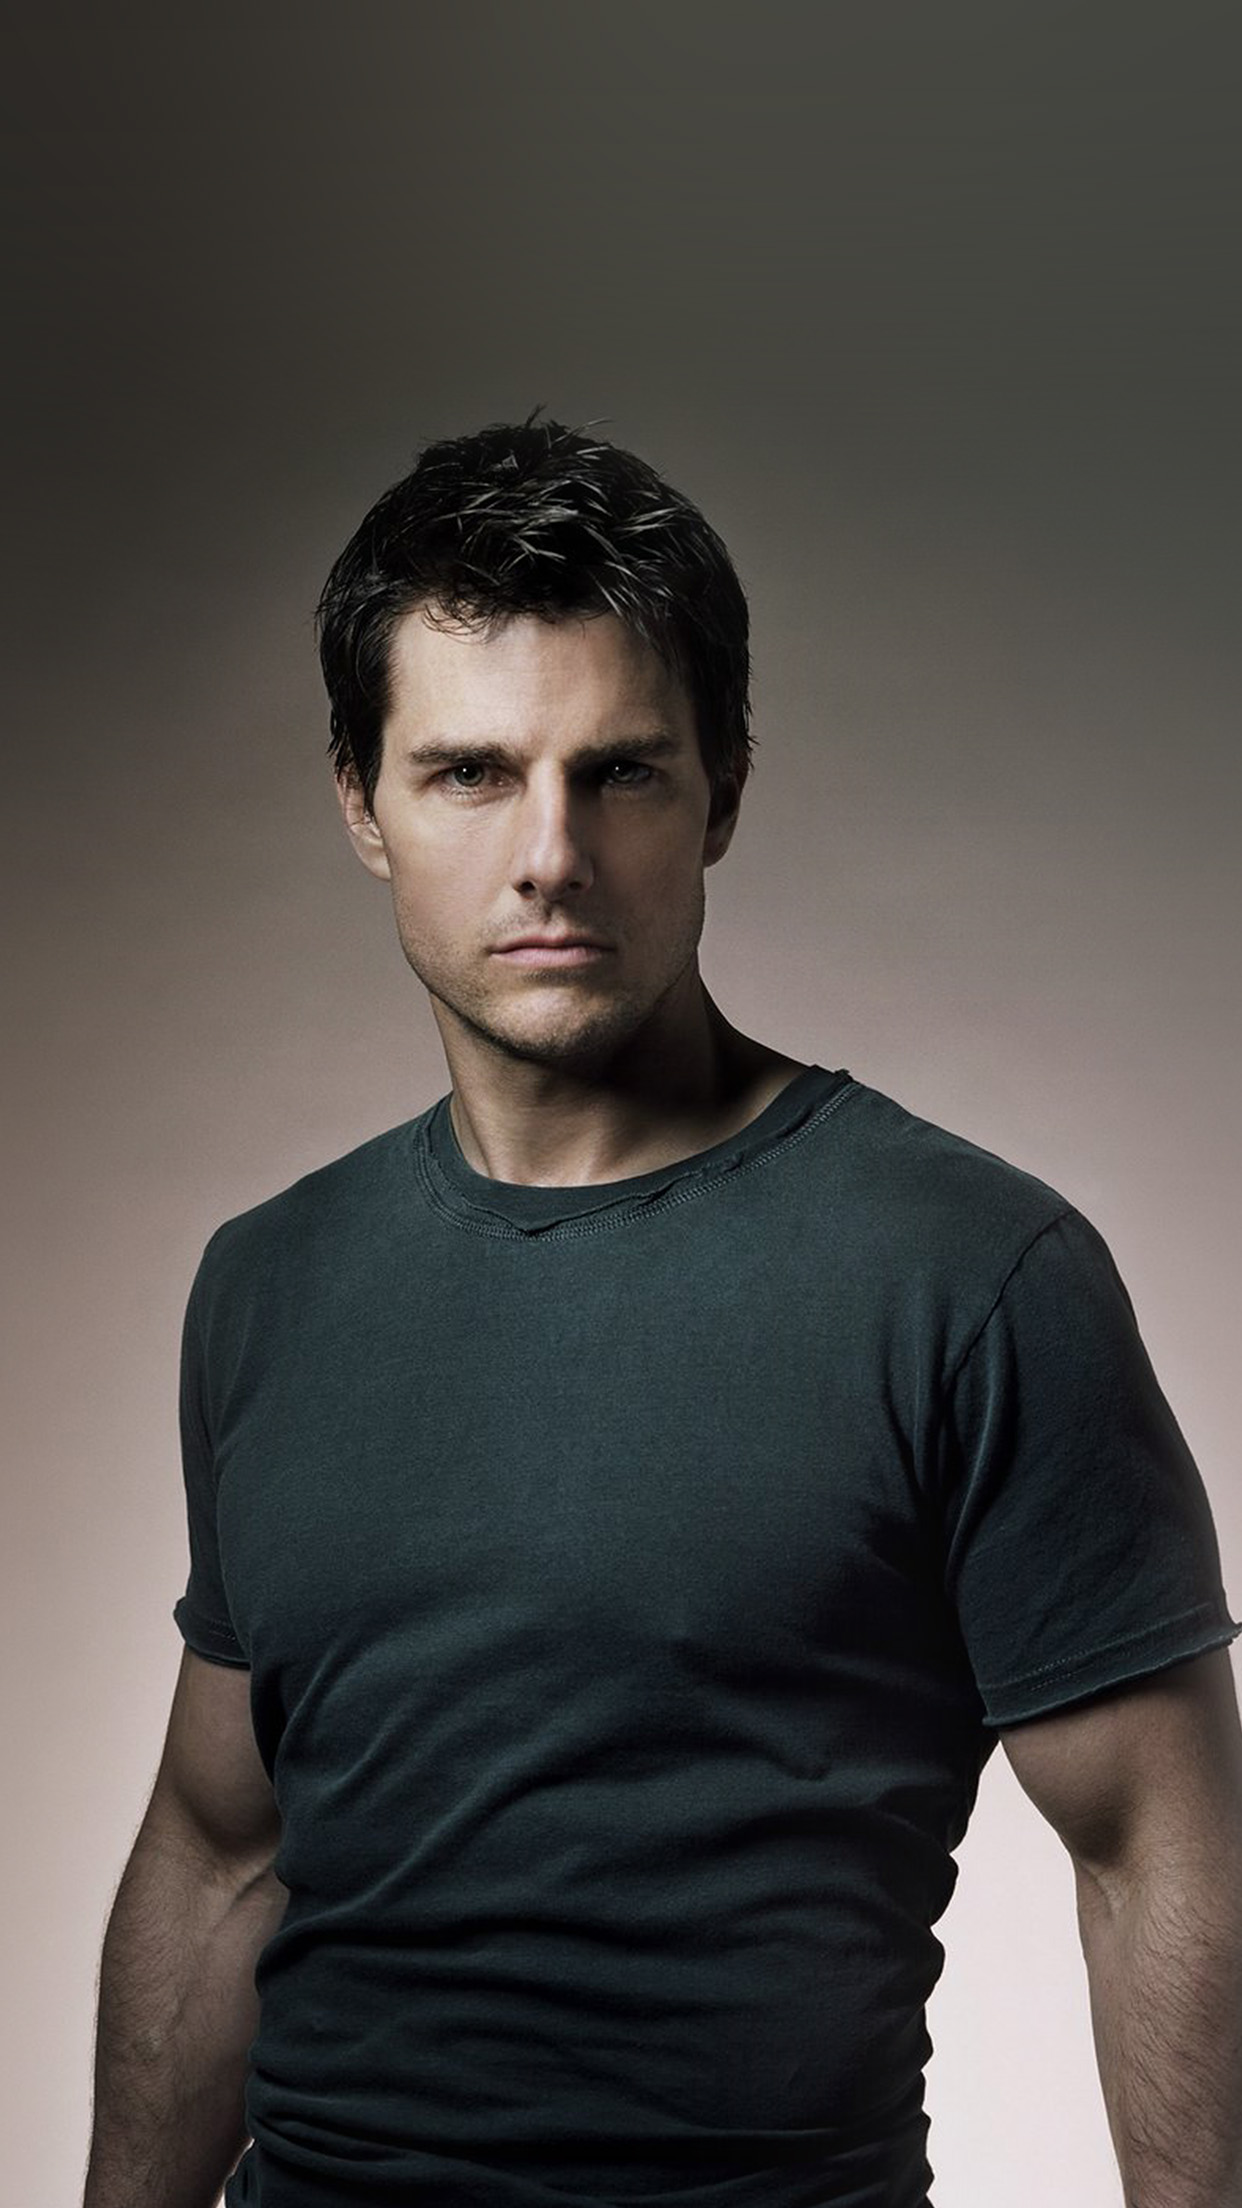 tom cruise film star actor celebrity android wallpaper - android hd